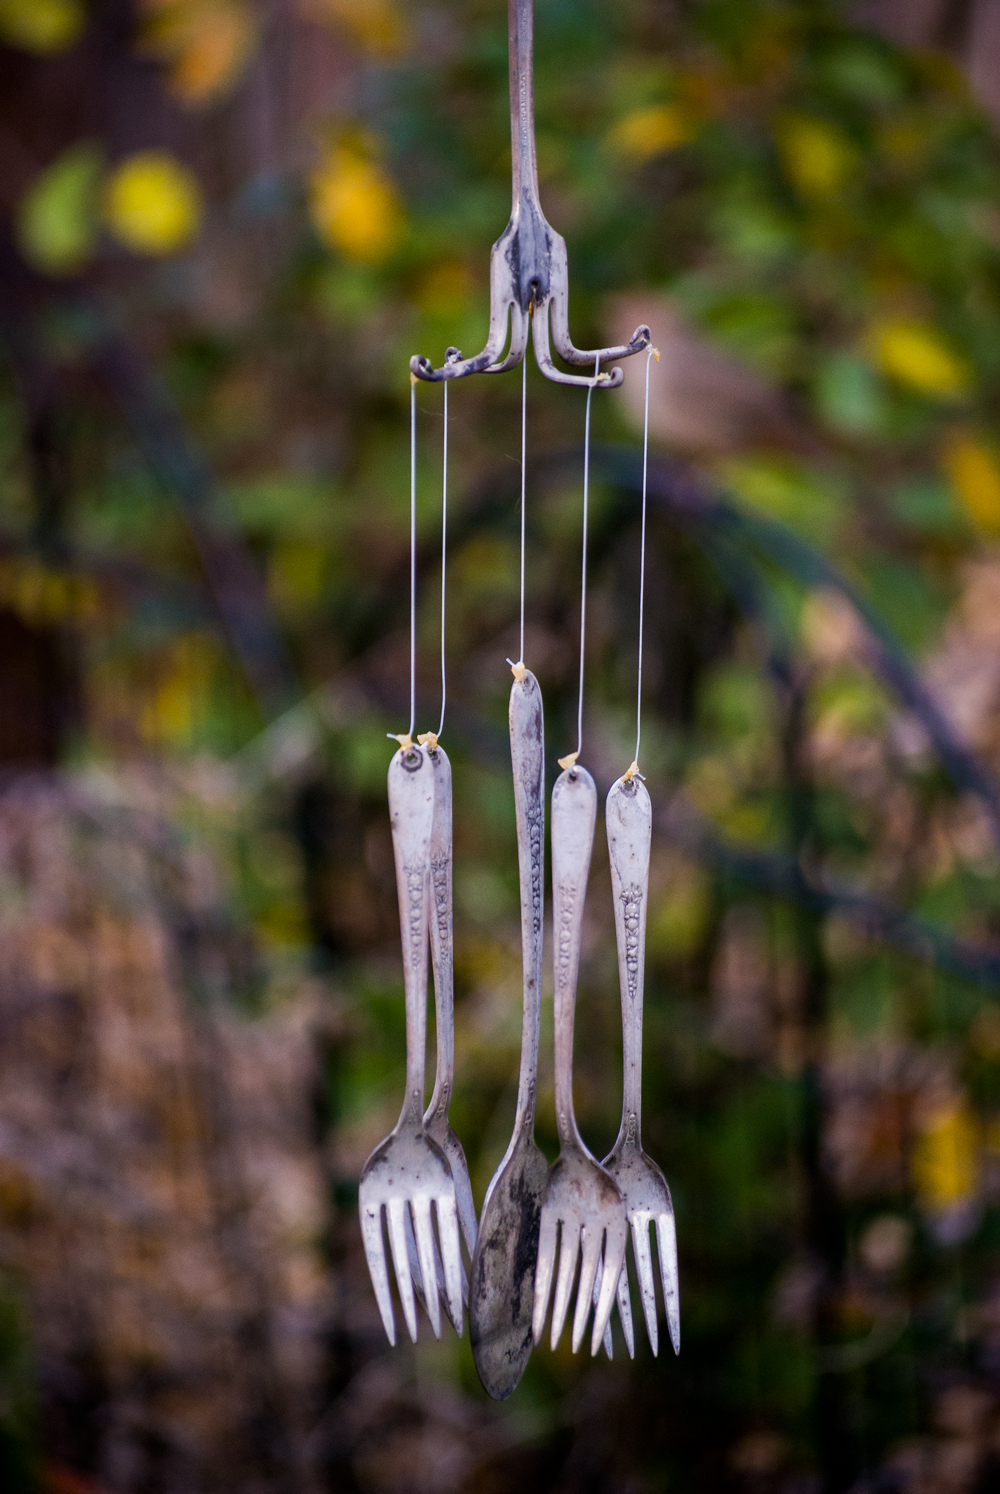 Forks in the Garden